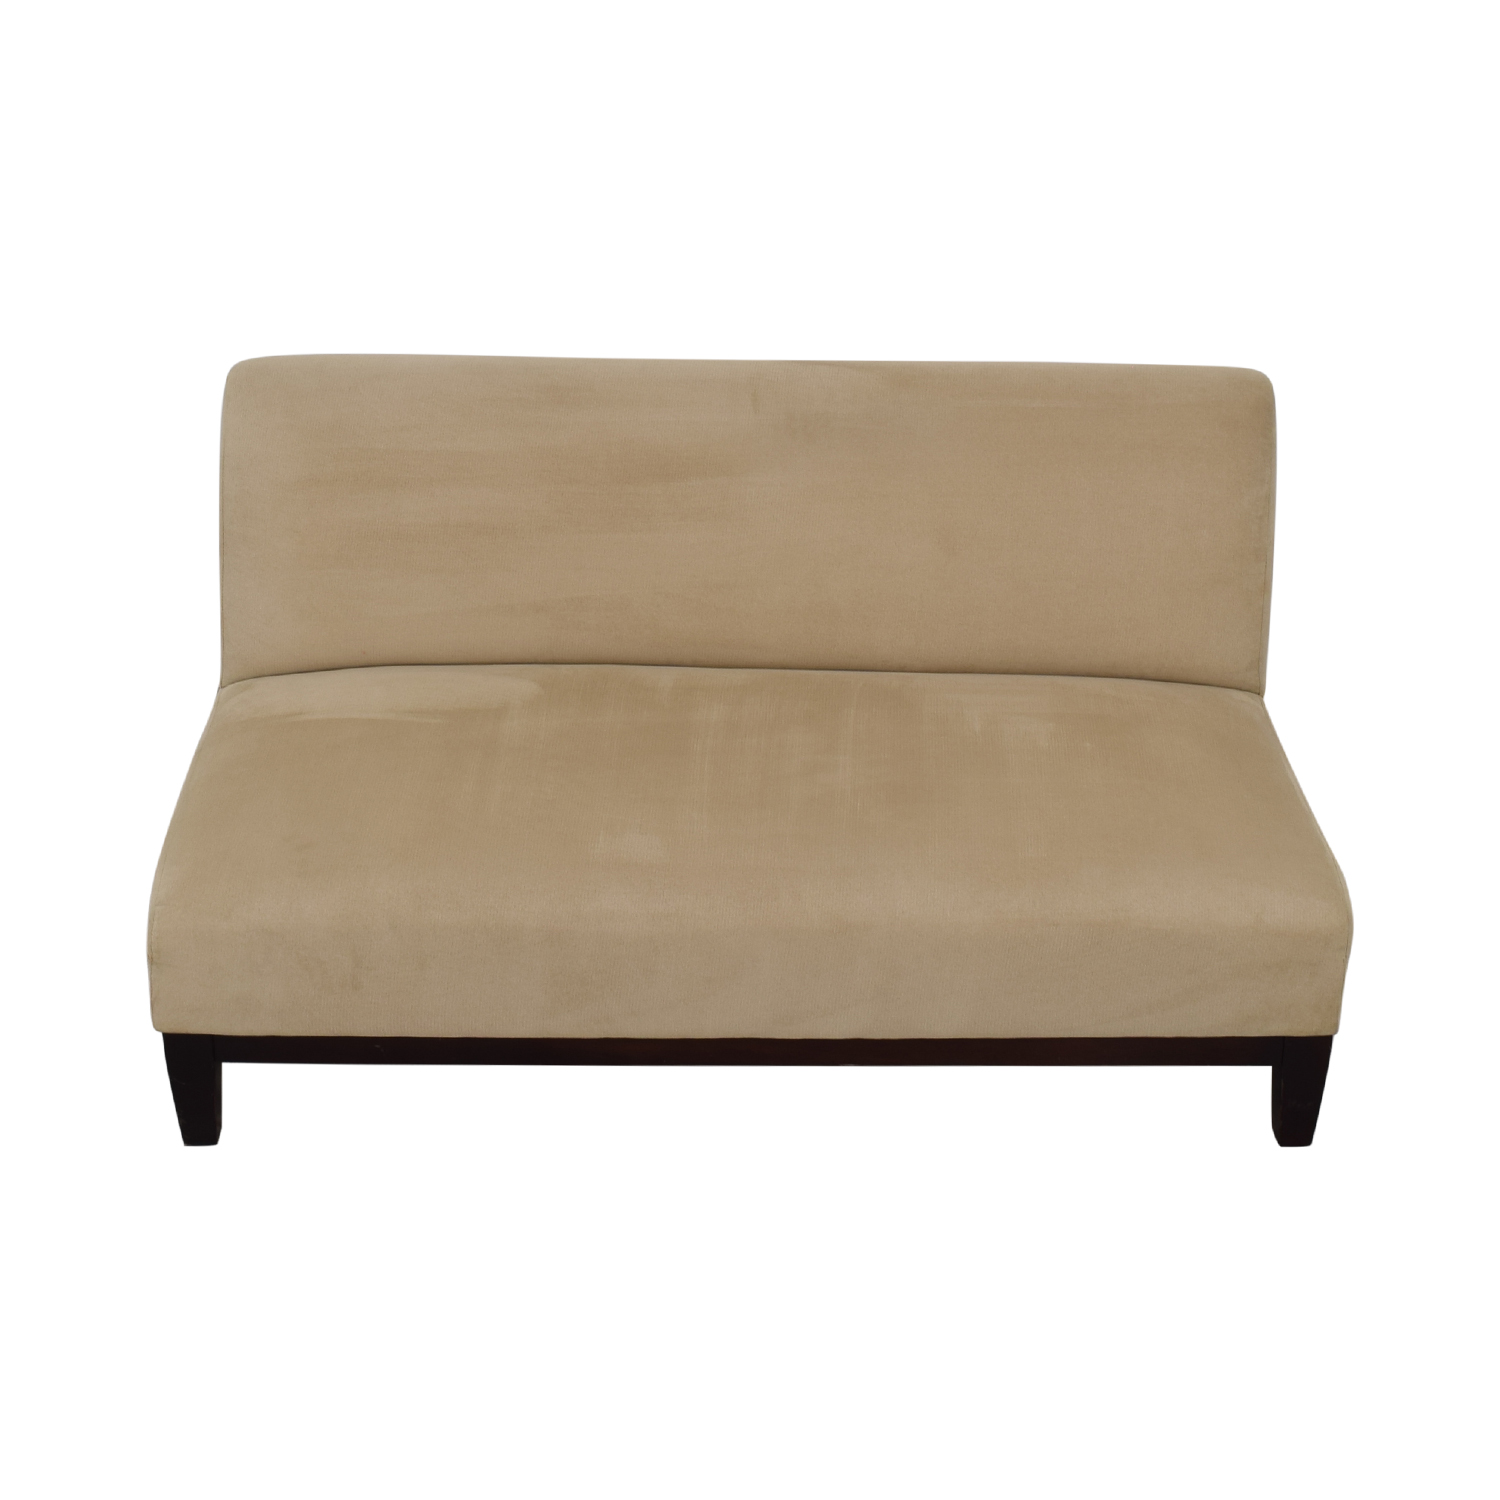 shop Room & Board Beige Microfiber Armless Loveseat Room & Board Accent Chairs